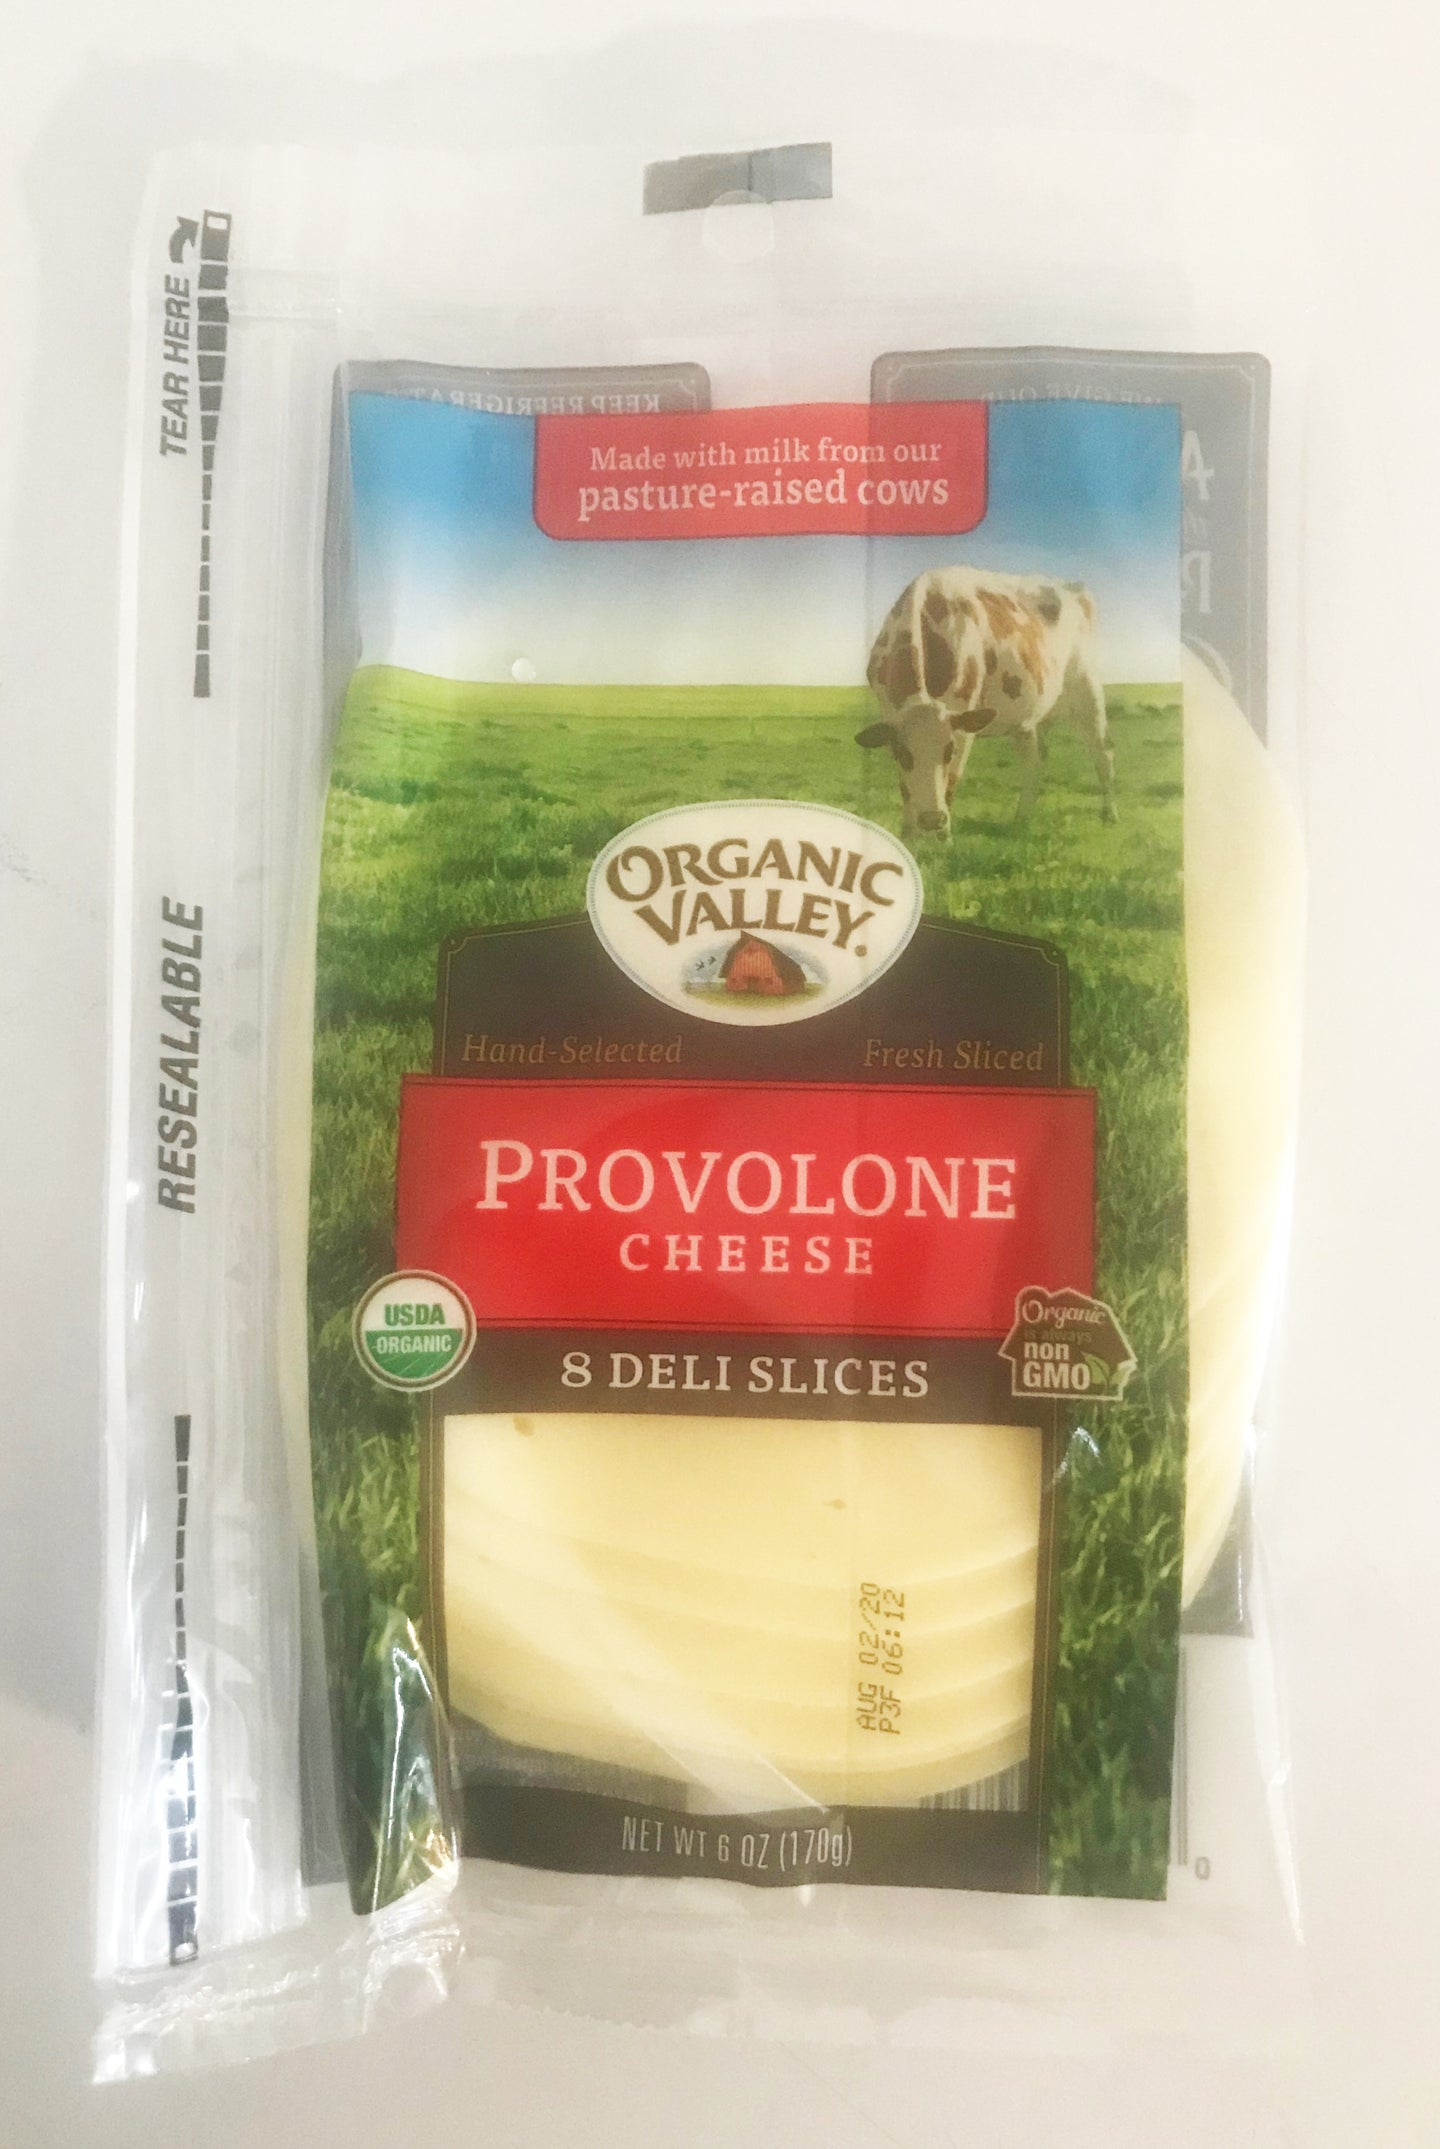 Organic Valley Provolone Cheese